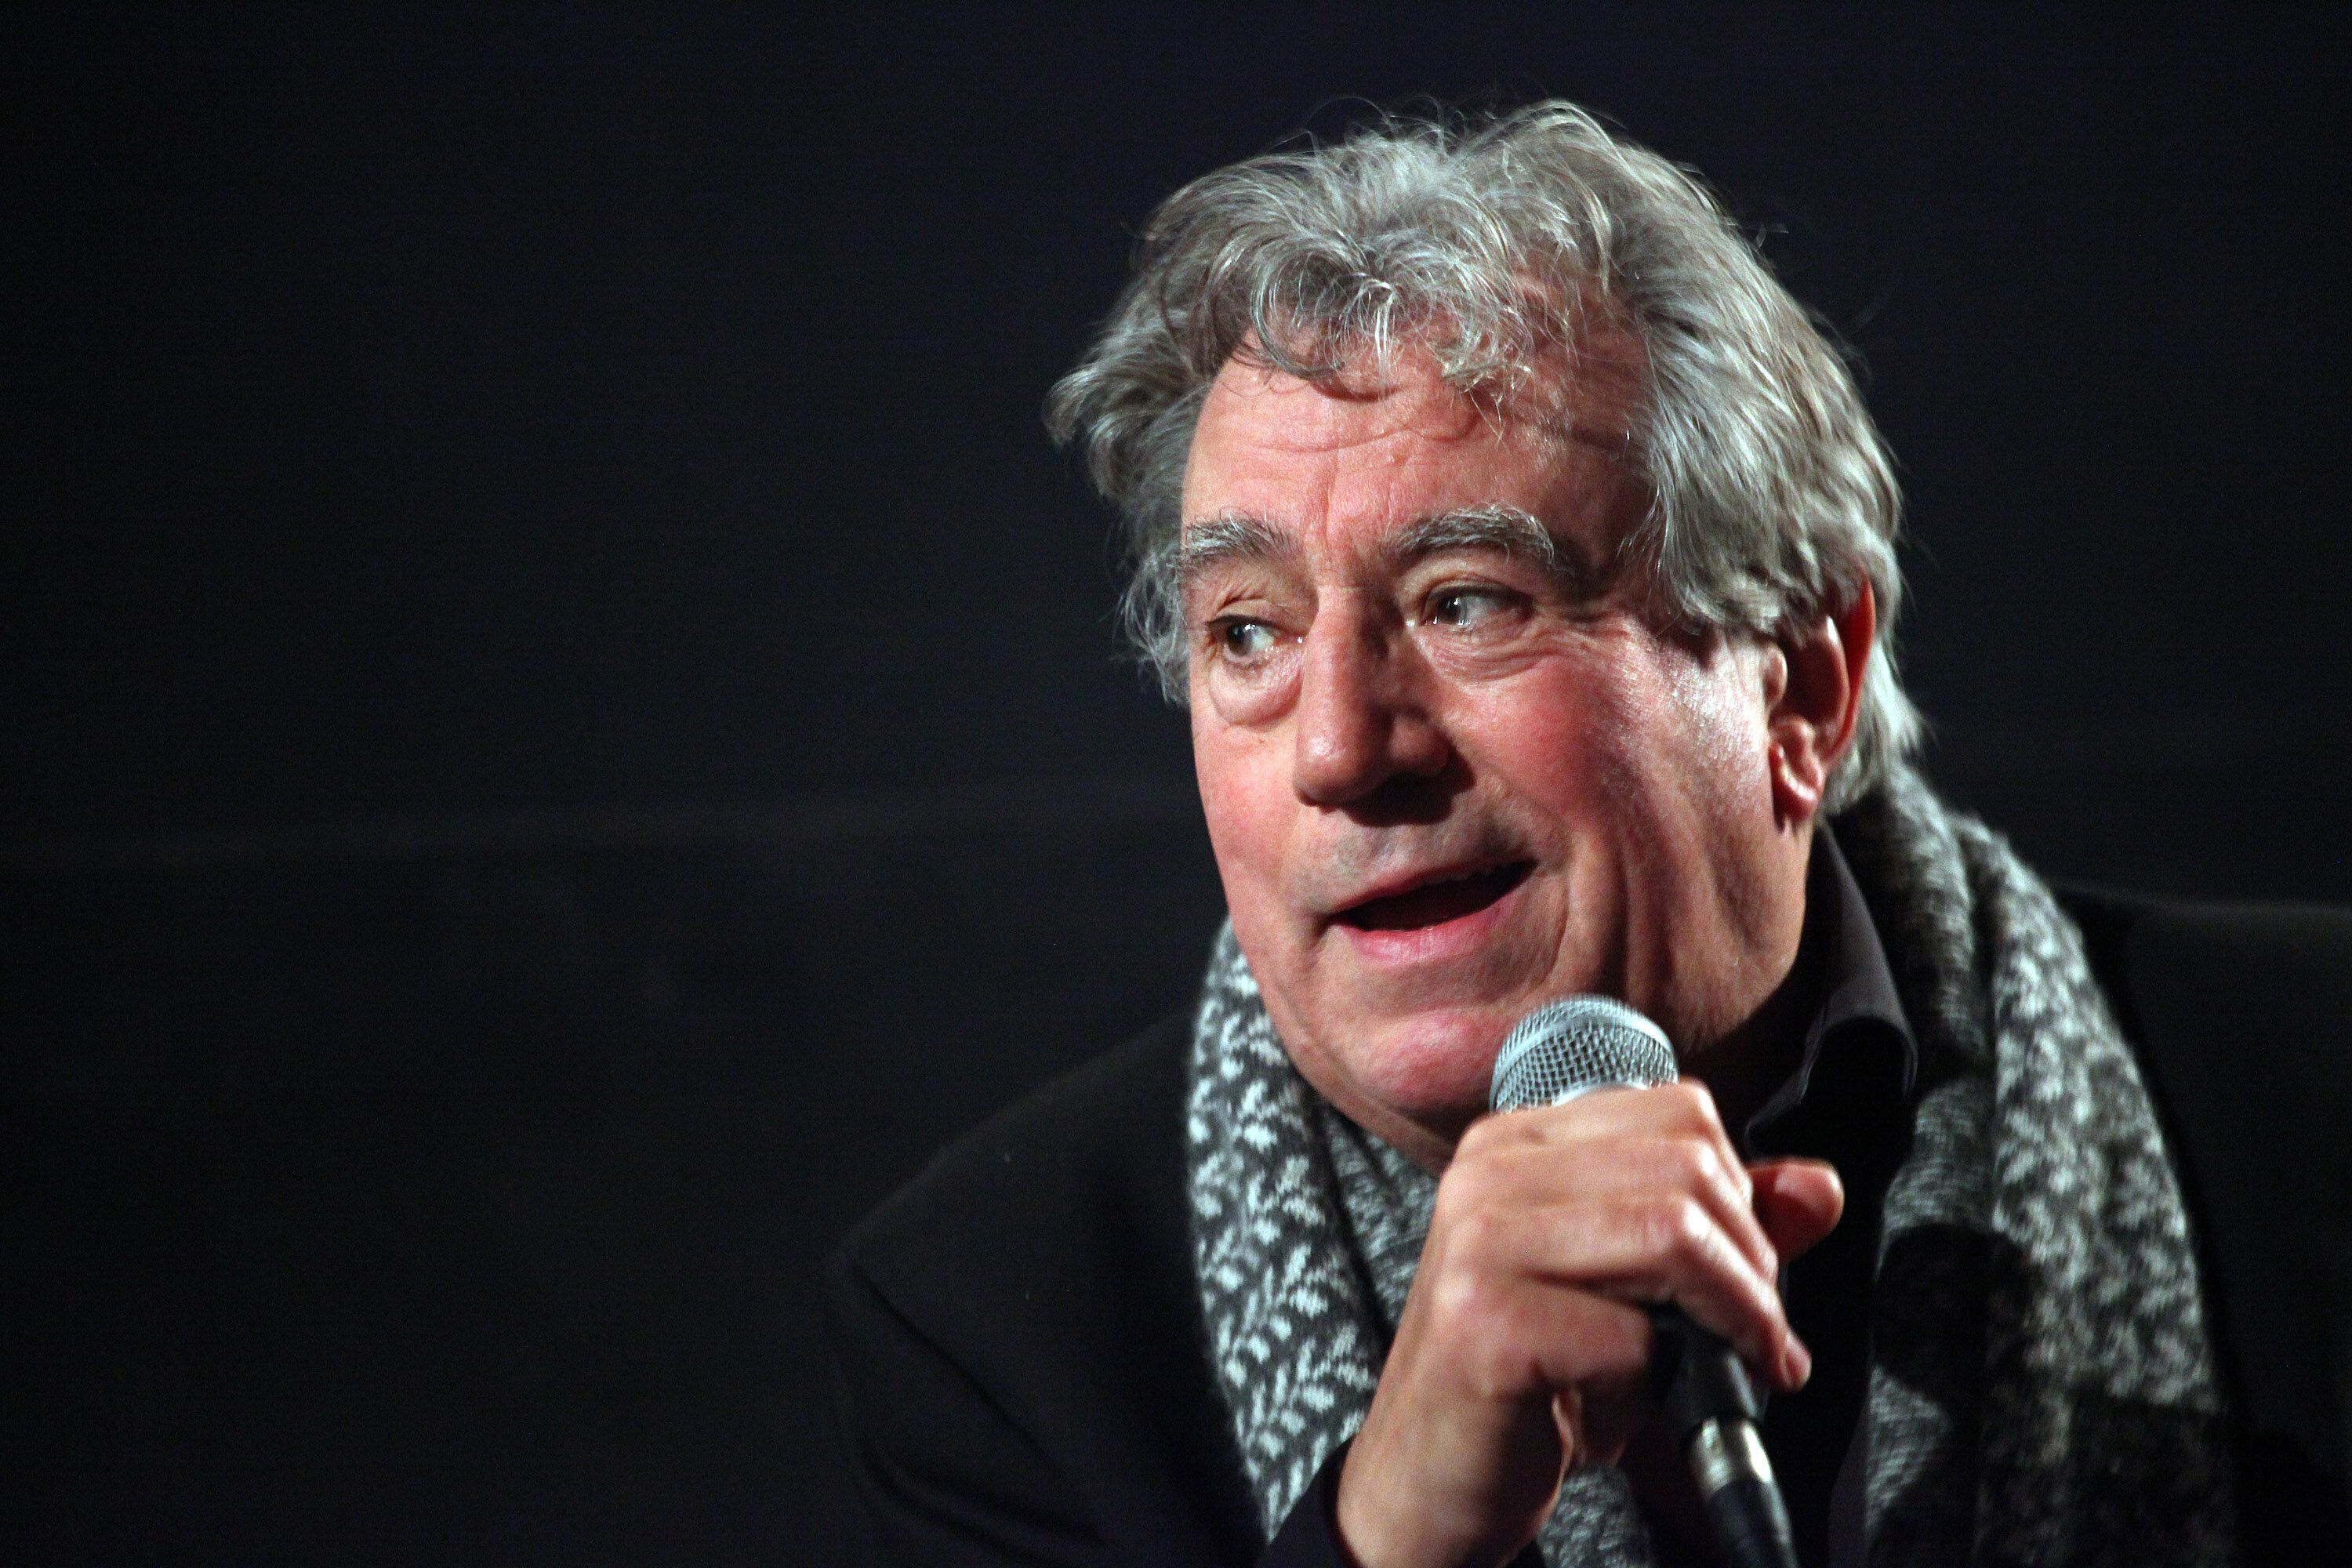 HOLLYWOOD, CA - DECEMBER 14:  Actor Terry Jones attends the American Cinematheque presents Monty Python's Terry Jones in conversation with Edgar Wright held at the American Cinematheque's Egyptian Theatre on December 14, 2014 in Hollywood, California.  (Photo by Tommaso Boddi/WireImage)